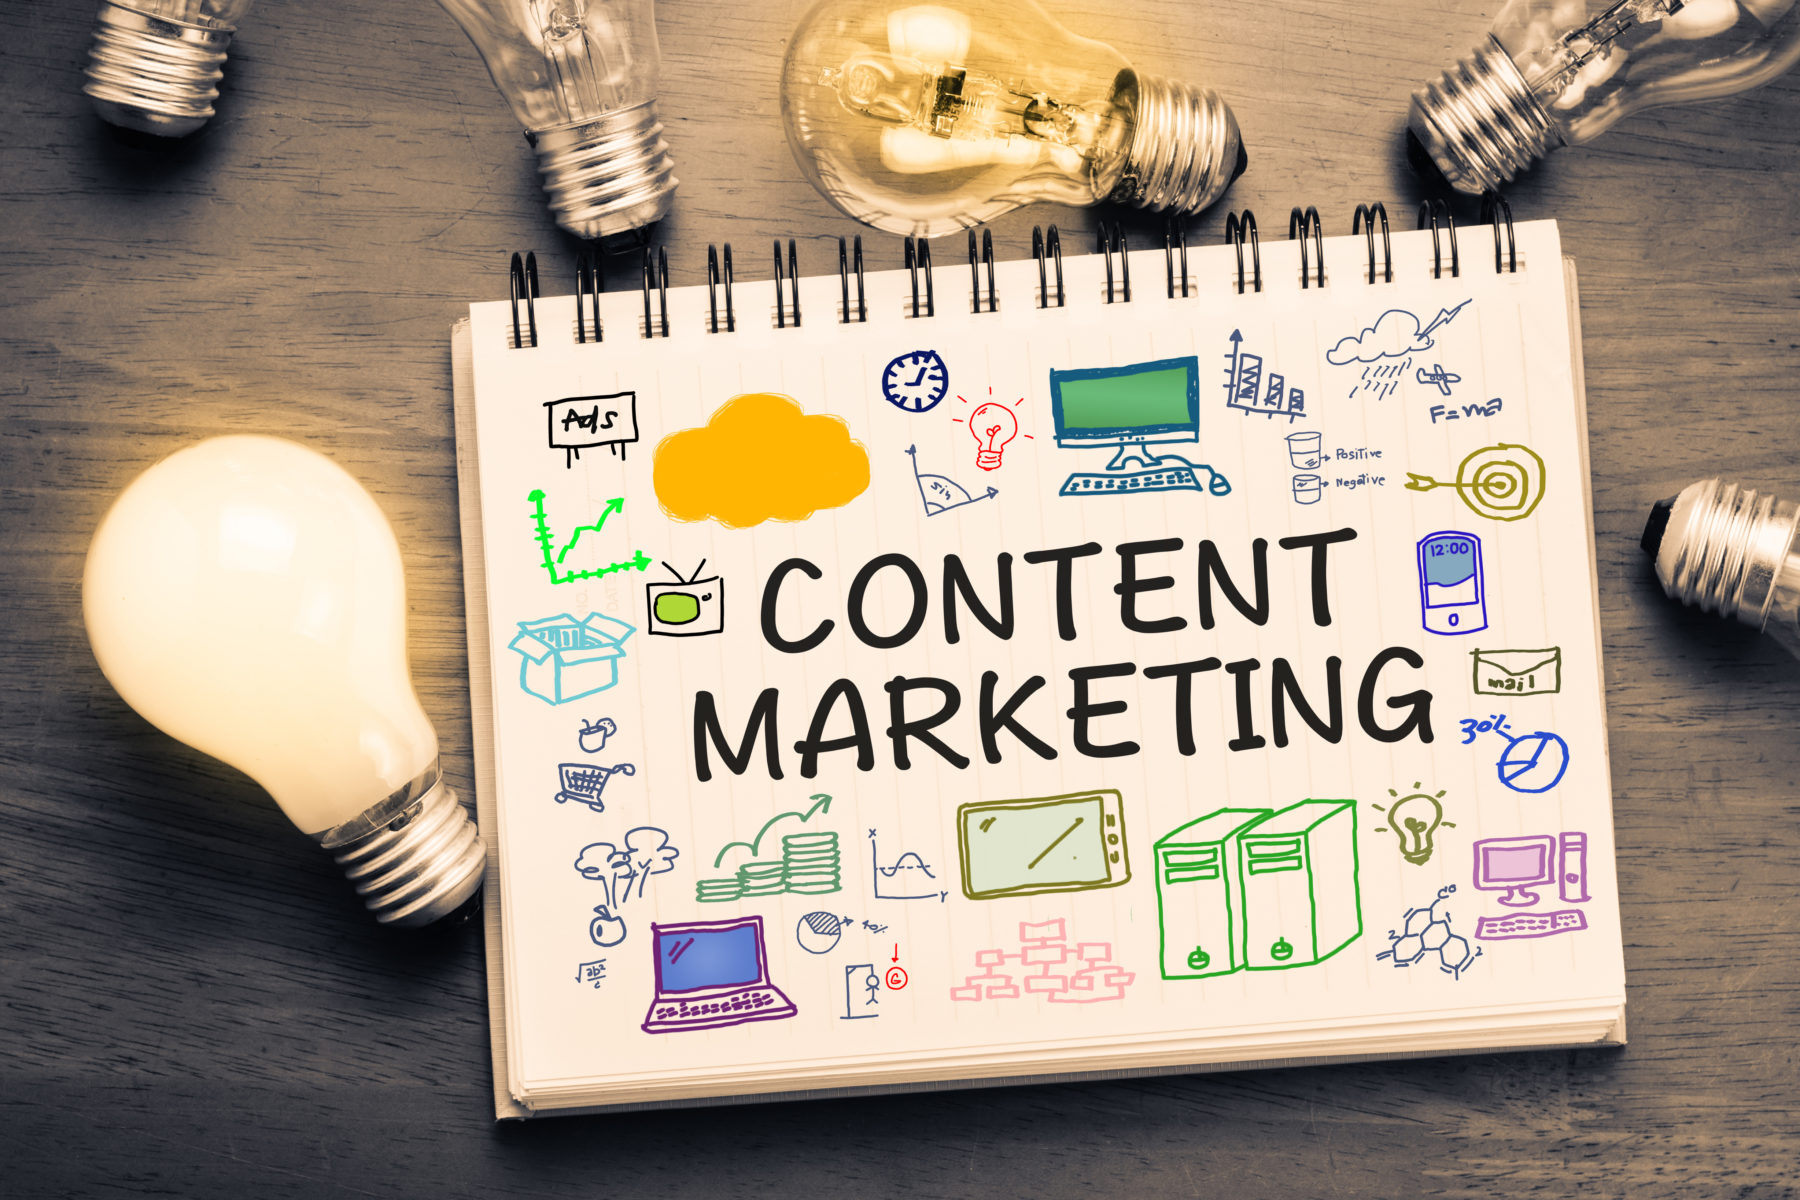 content marketing concept drawn on a notepad rerpesenting how our Crown Point digital marketing team understands content